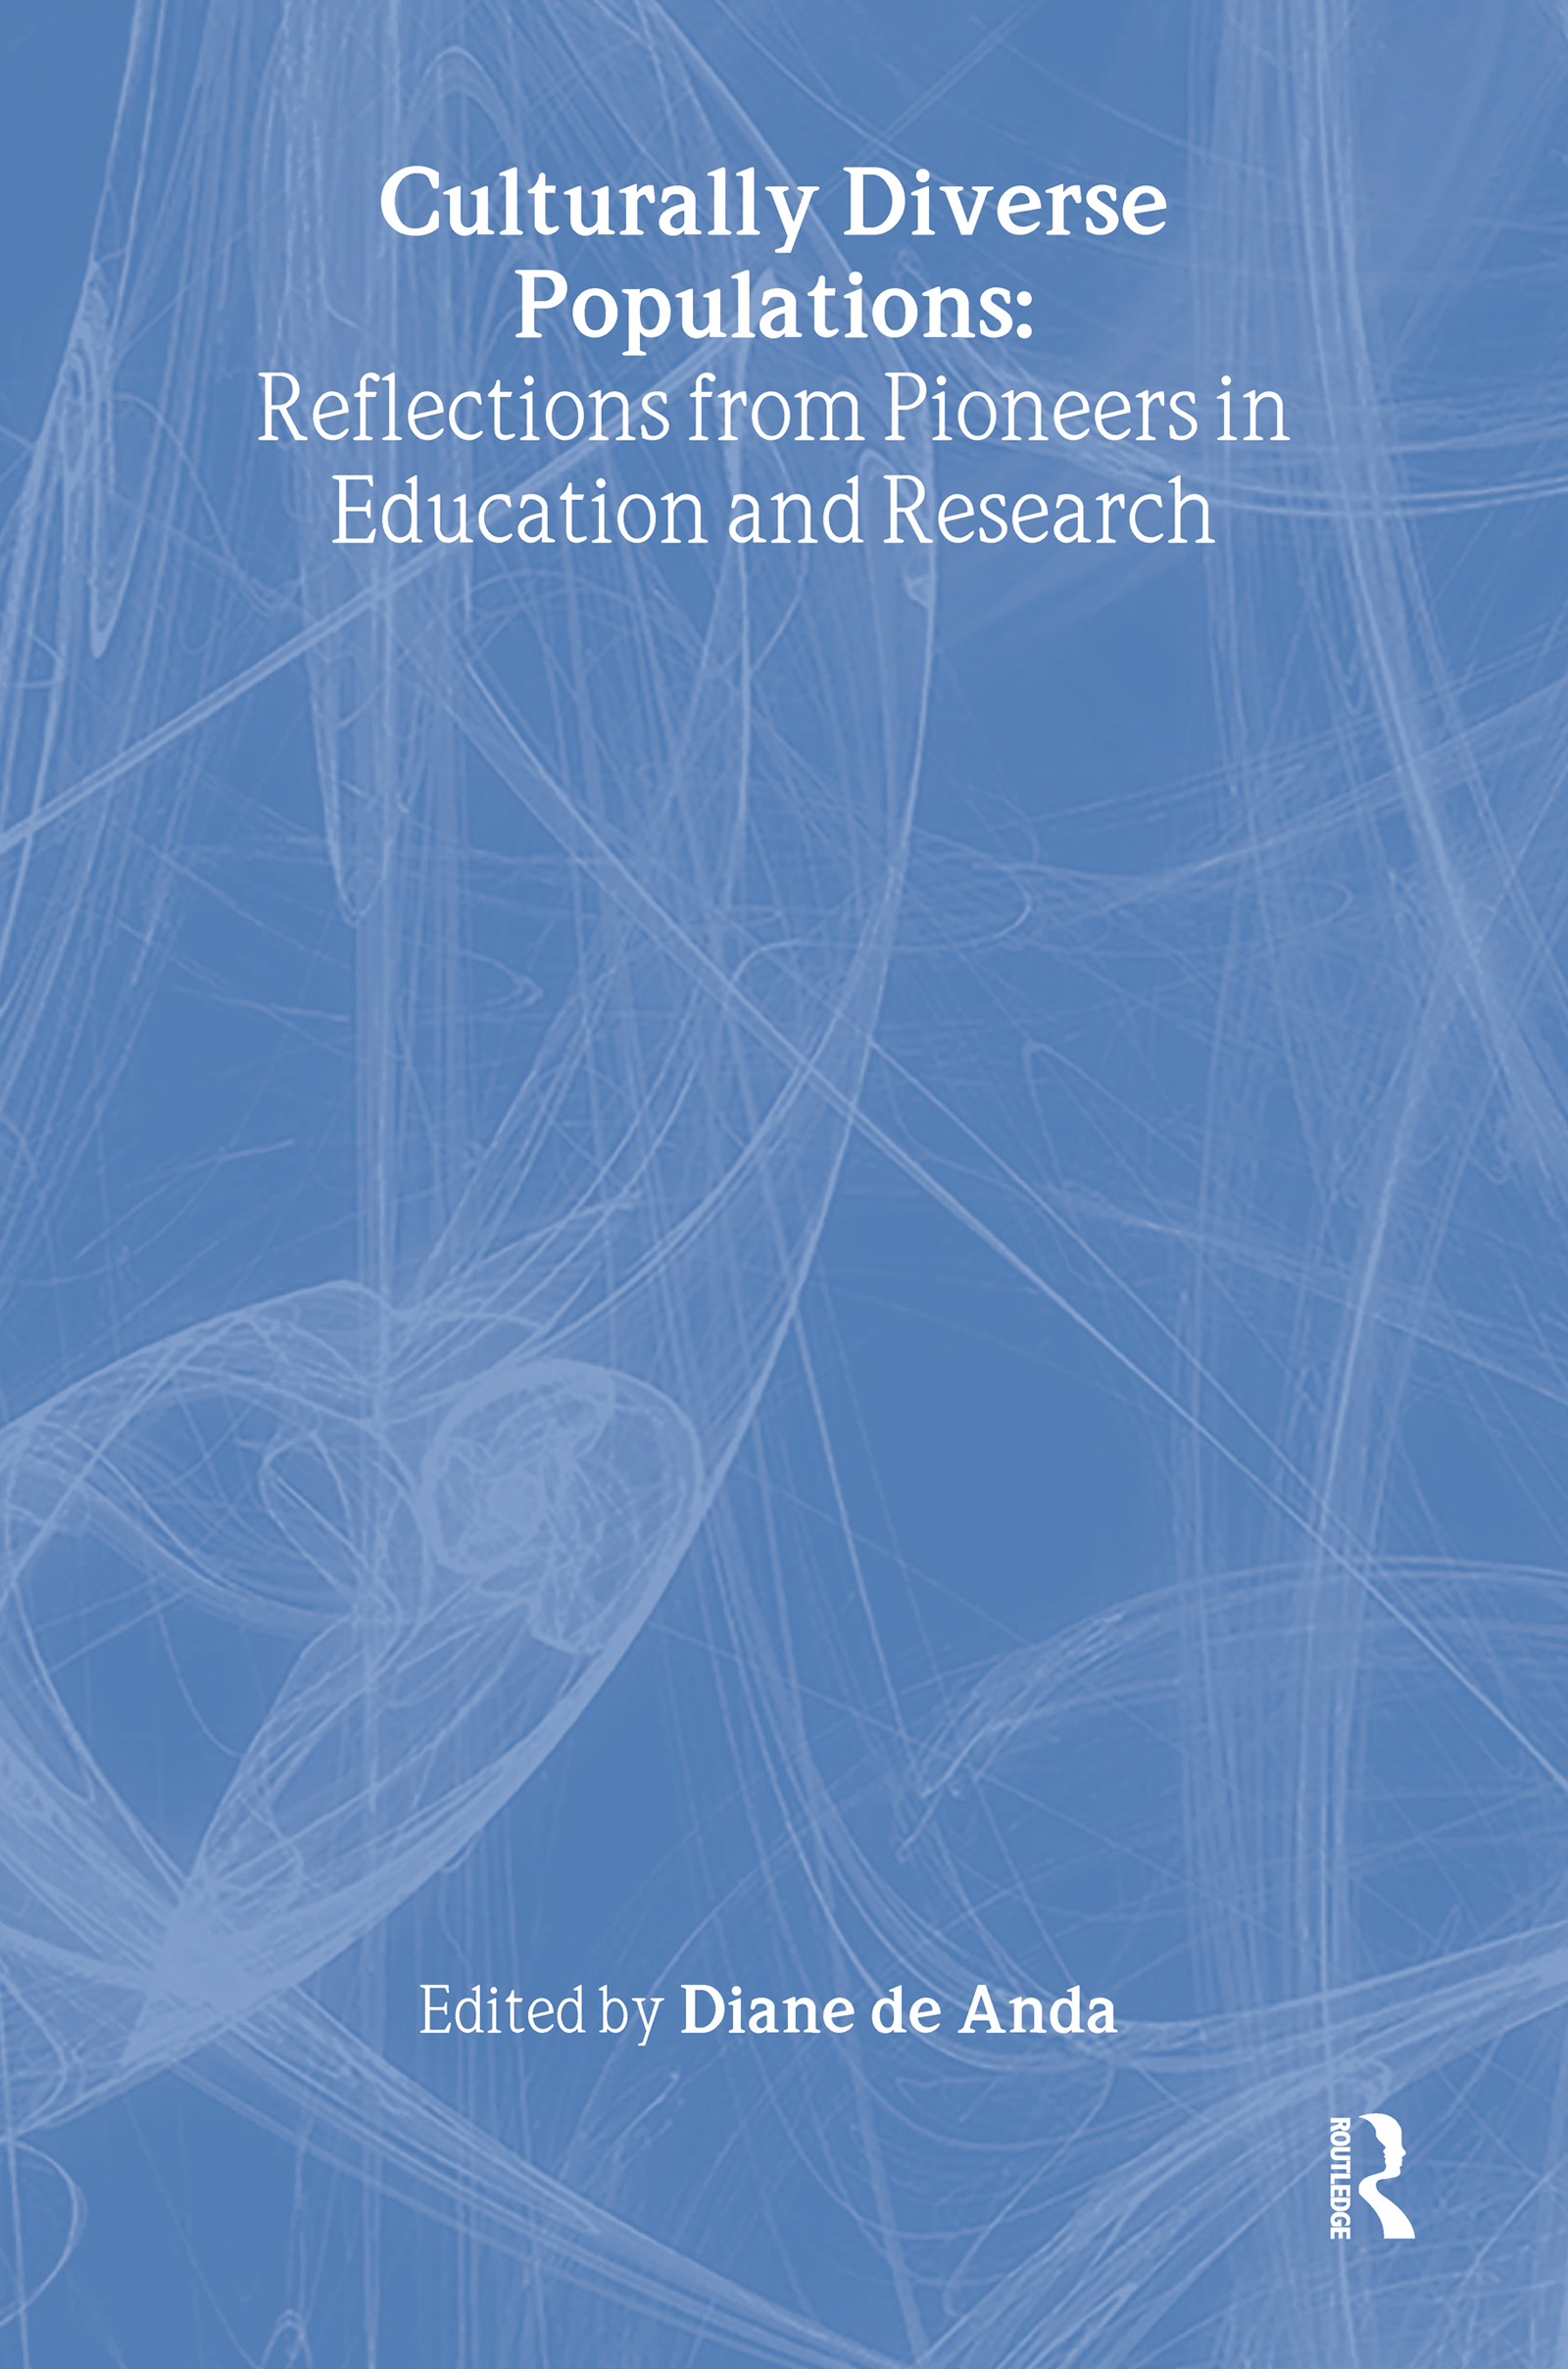 Culturally Diverse Populations: Reflections from Pioneers in Education and Research: 1st Edition (Paperback) book cover